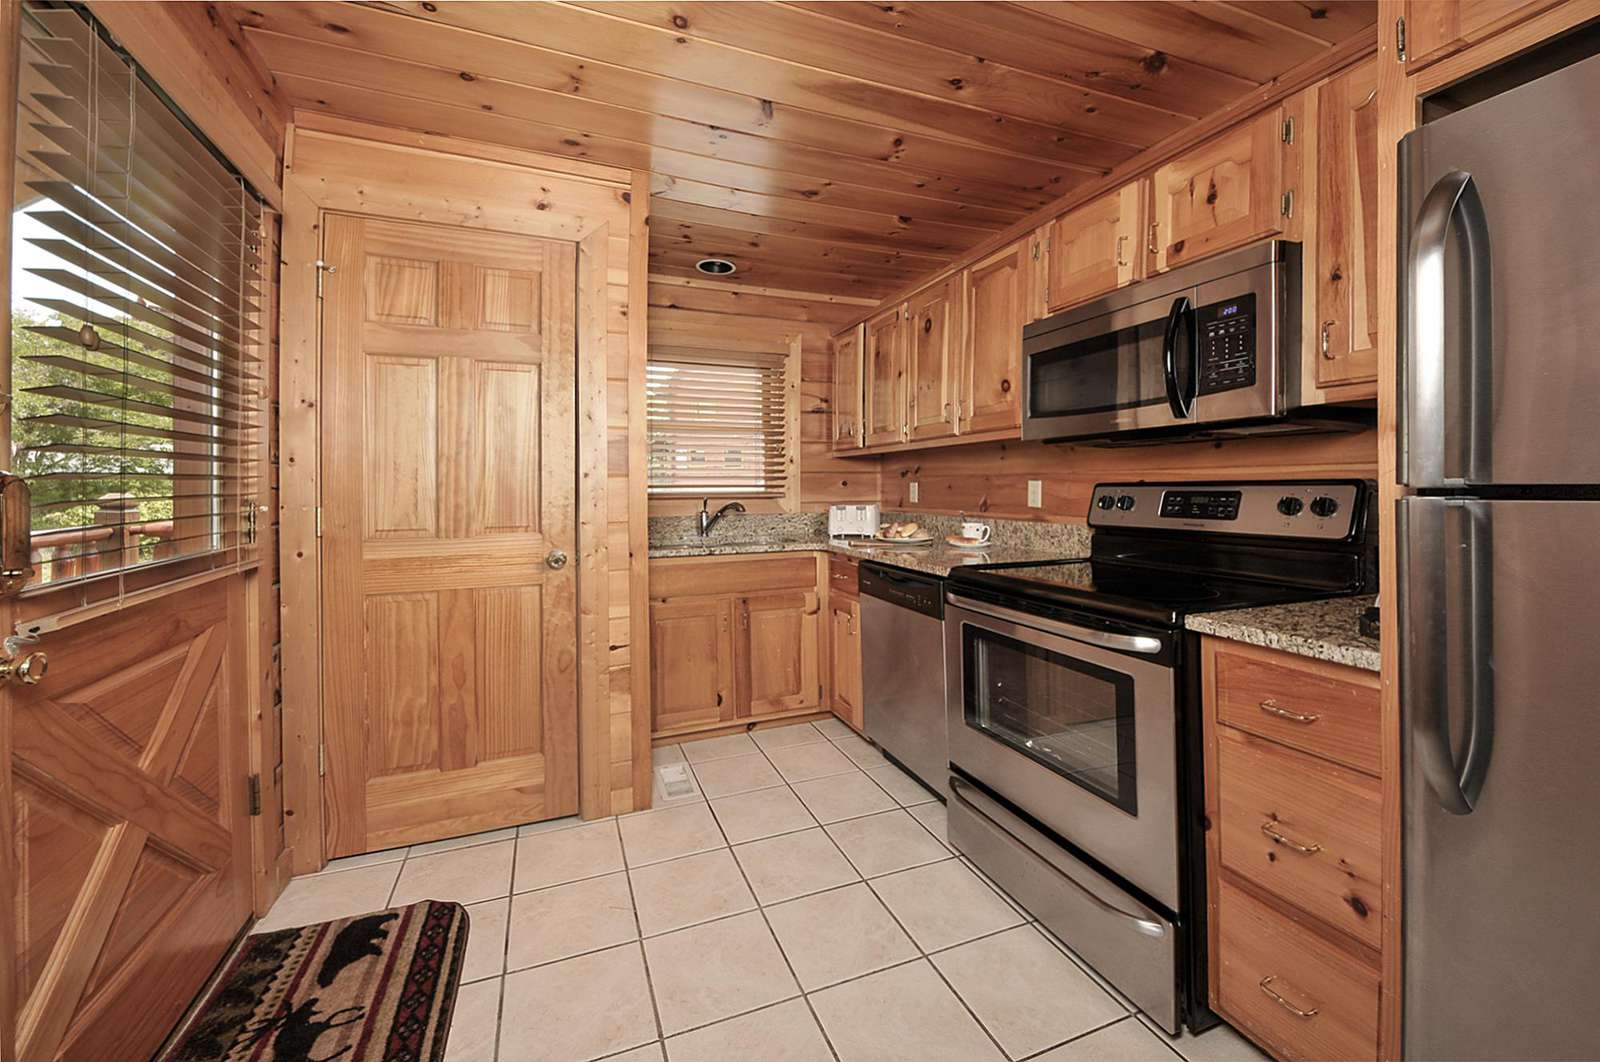 Fully Stocked Kitchen with Washer/Dryer Unit